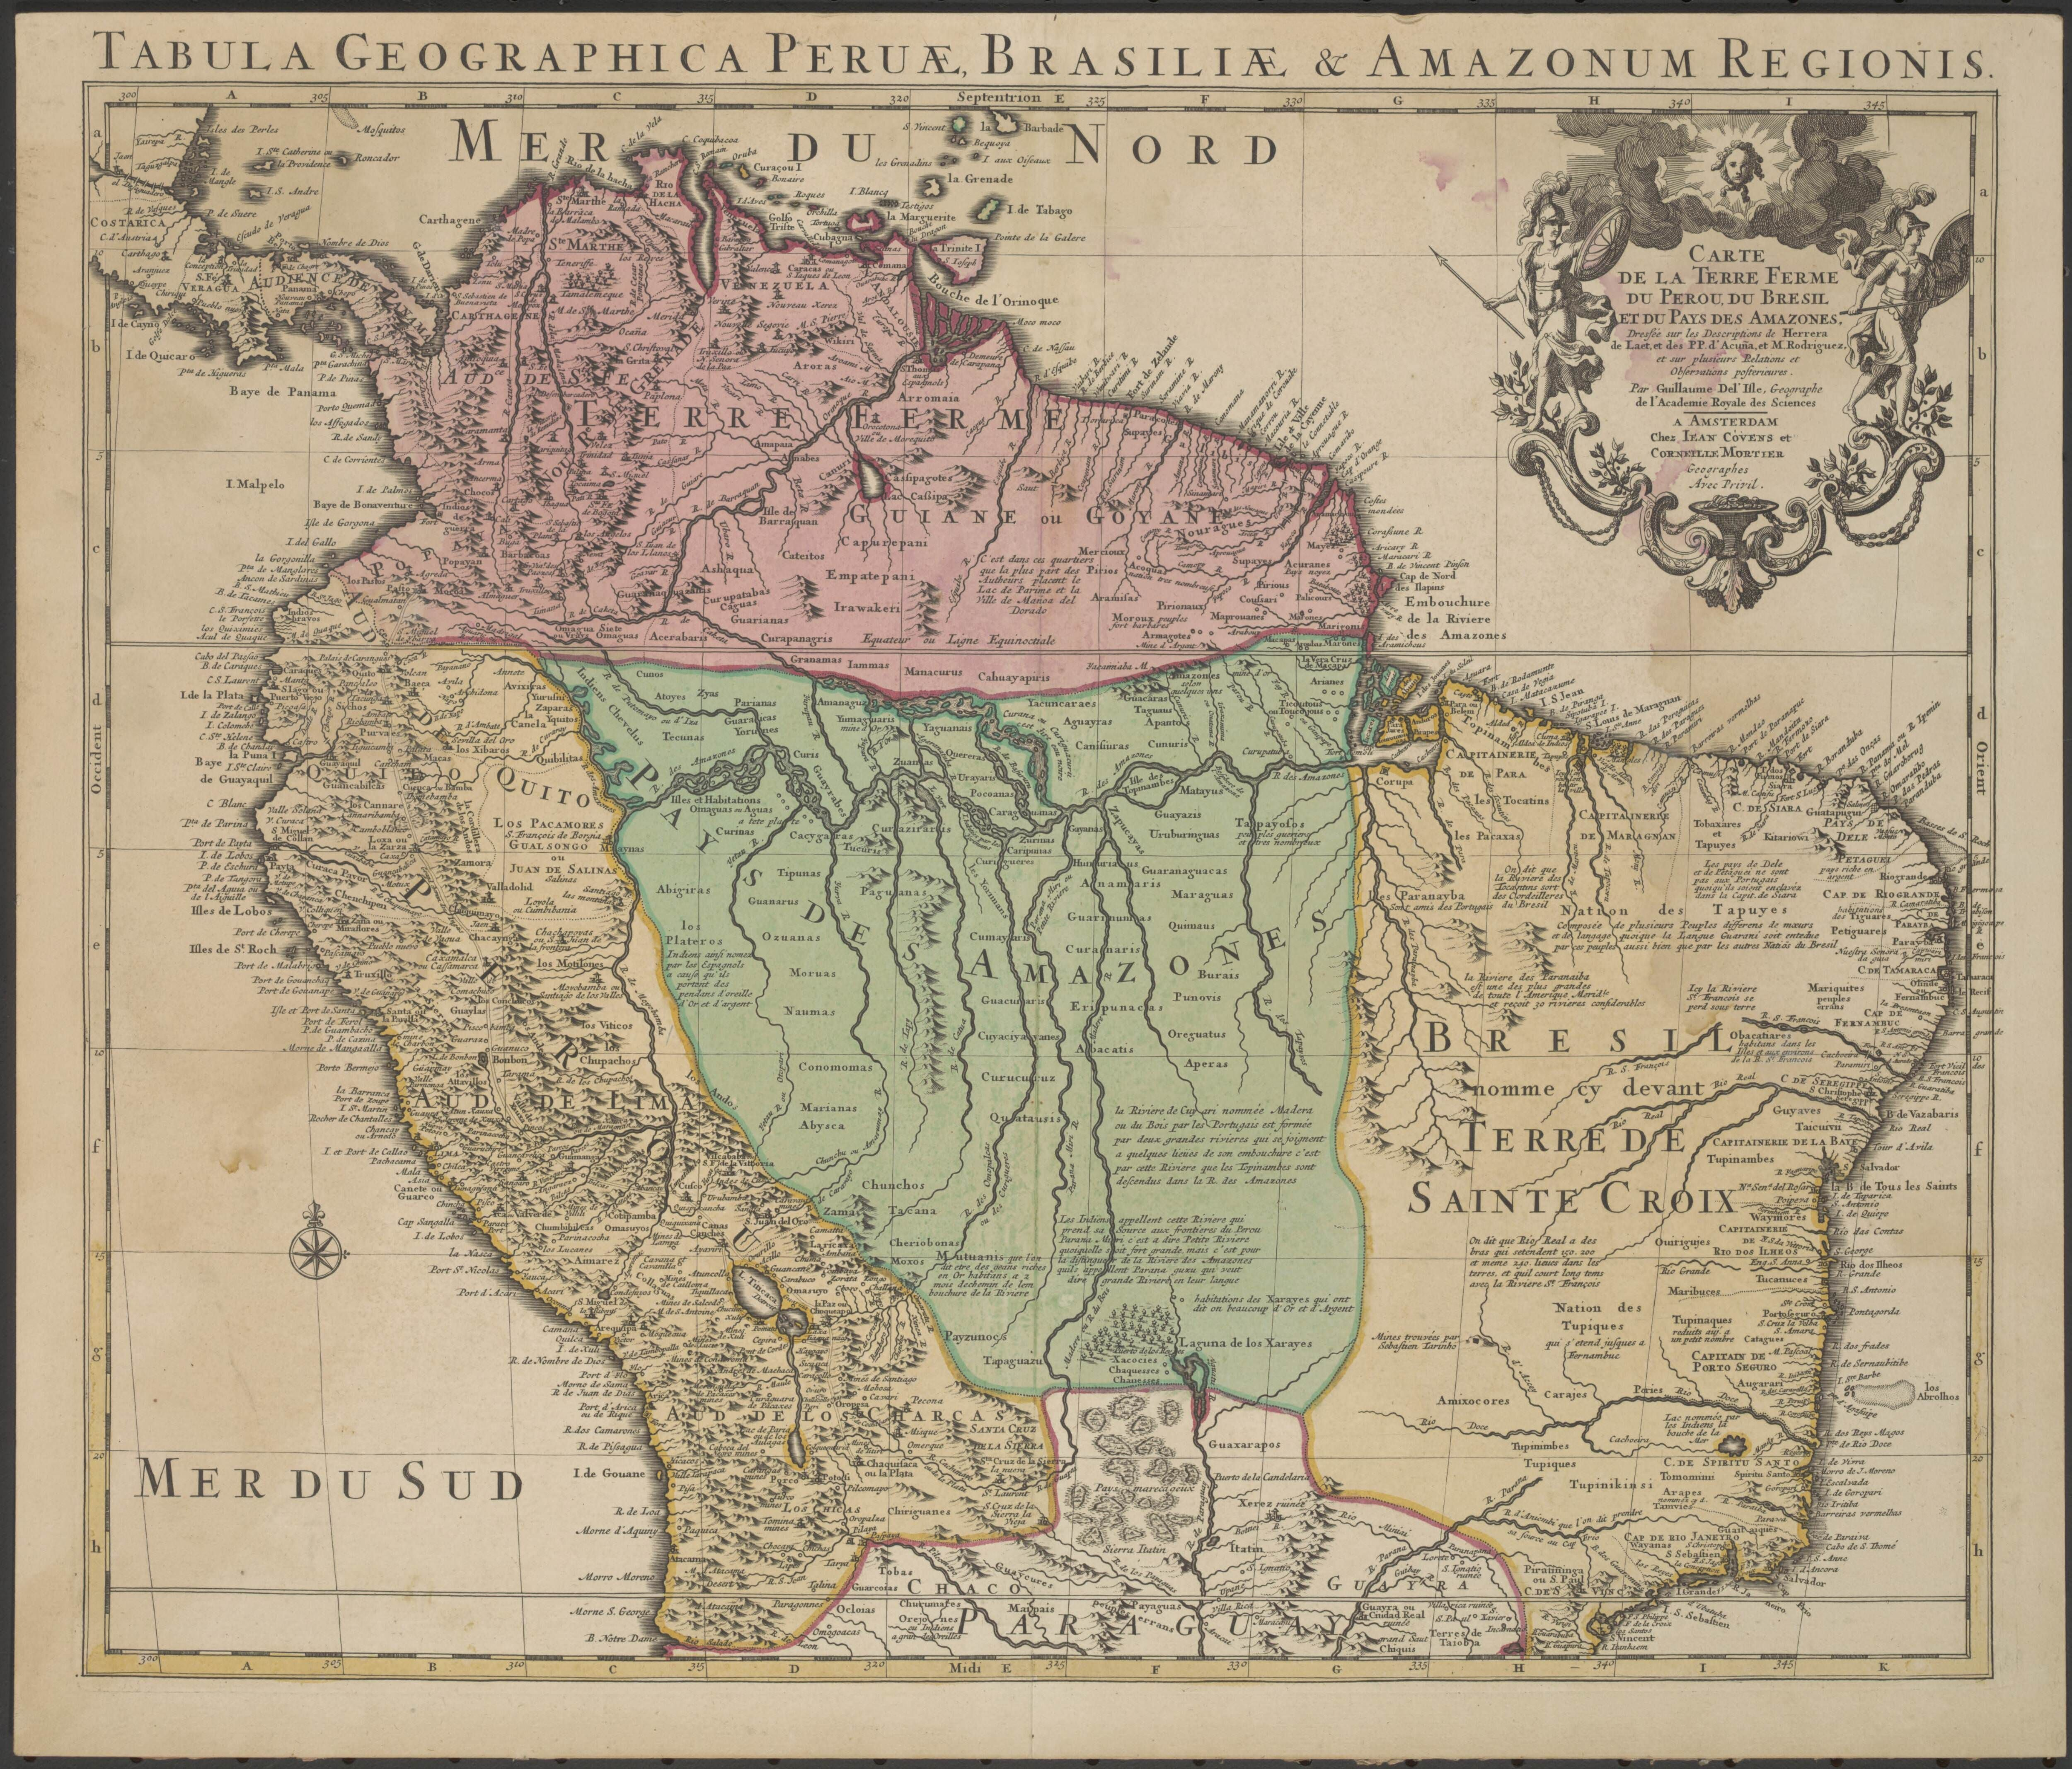 1730 map of northern South America | History | Map, South ... Image Of Northern South America Map on major rivers in south america, map of northern ca wine country, map of northern east coast usa, map of north america natural resources, topography of northern south america, northern part of south america, map of north america without labels, map of latin america, map of northern lebanon, map of the northern america, political map of america, map of northern fiji, map of northern adriatic, map of northern ukraine, map of eastern north america, map of northern jordan, map of central america, map of northern south carolina, map of northern european rivers, map of northern wisconsin,